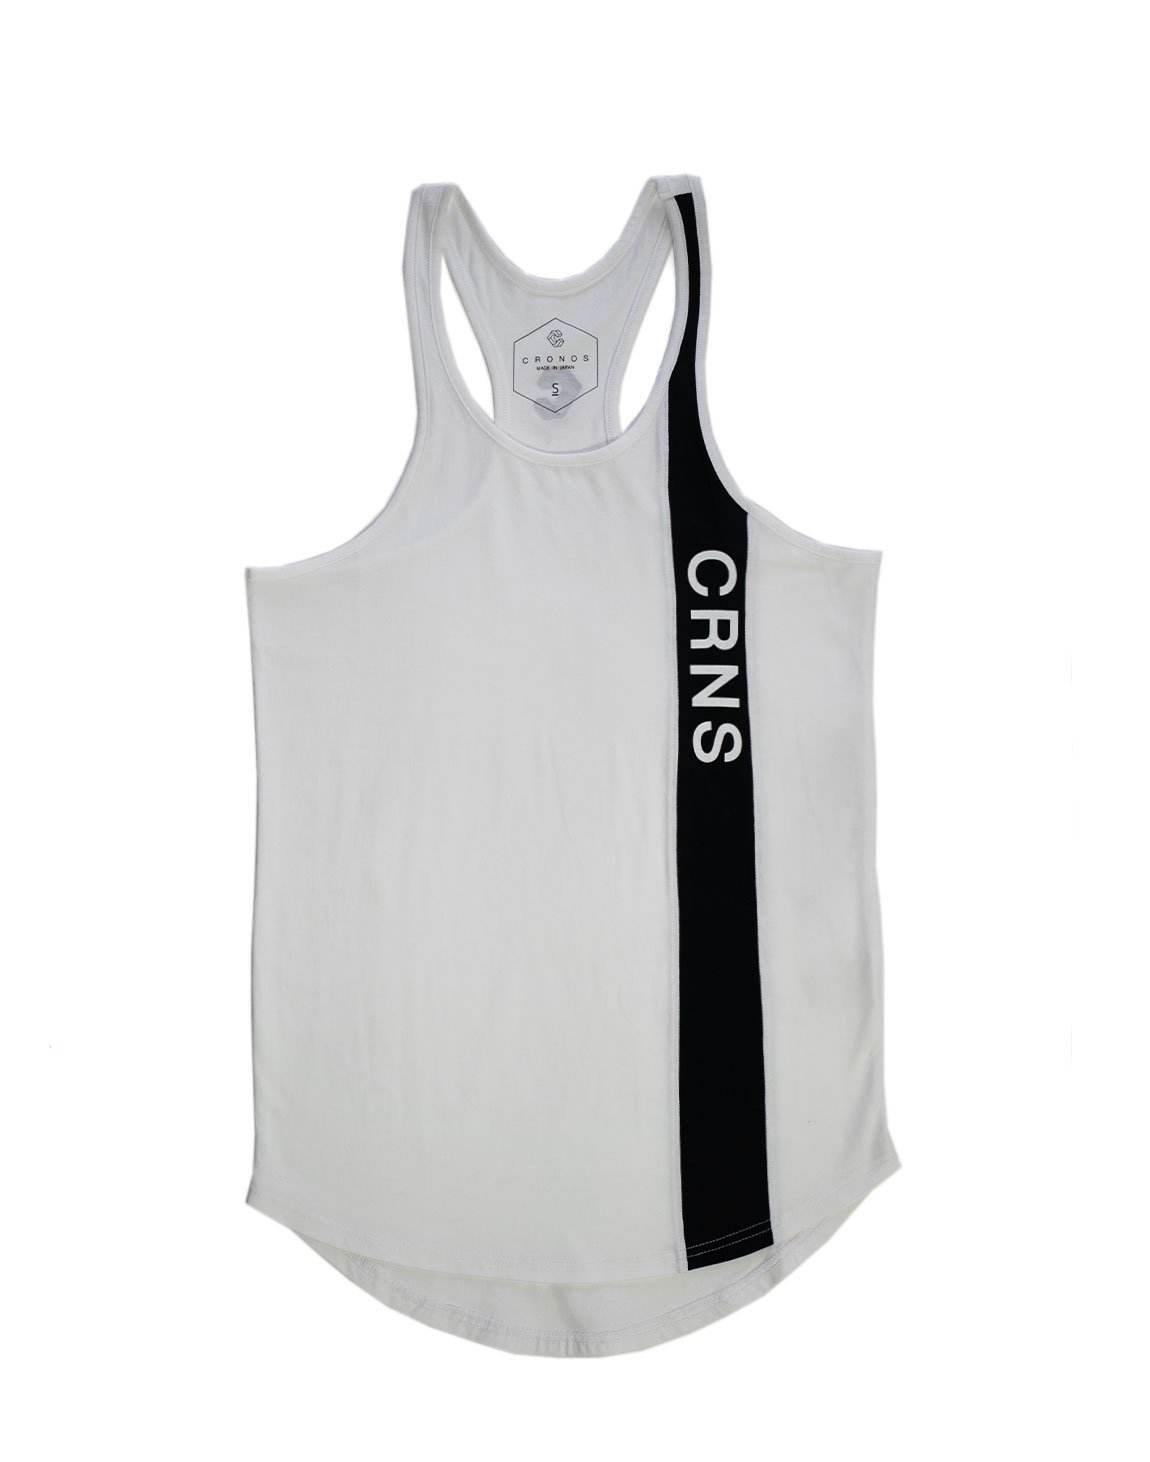 <img class='new_mark_img1' src='https://img.shop-pro.jp/img/new/icons1.gif' style='border:none;display:inline;margin:0px;padding:0px;width:auto;' />CRNS Line Tank top  WHITE